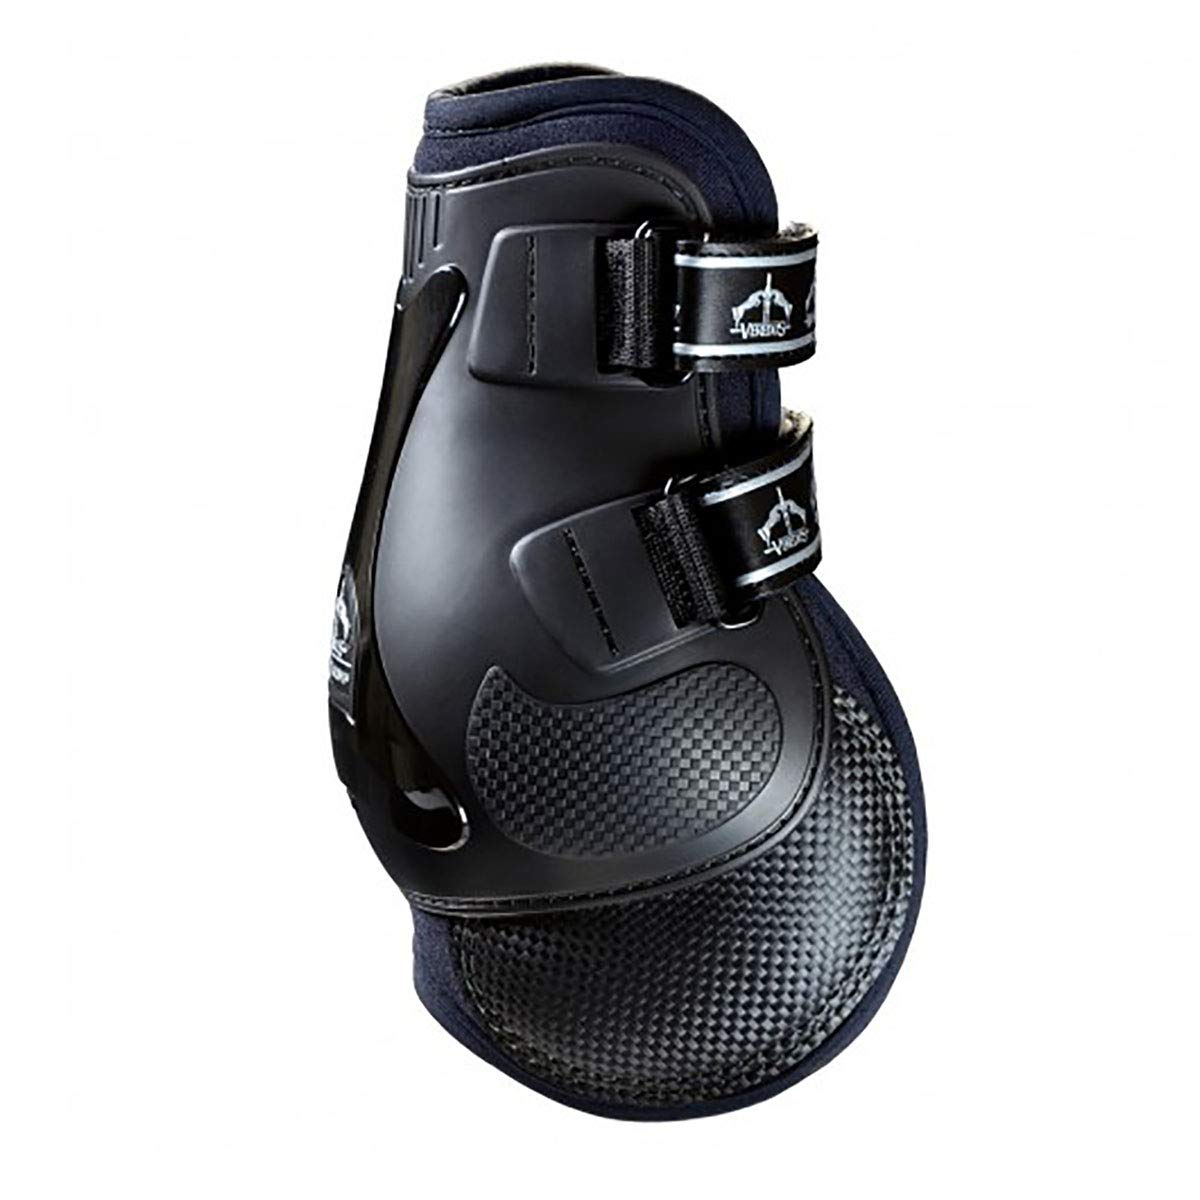 Veredus - Young Jump XPRO - Horse Boots - Made in Italy - Black